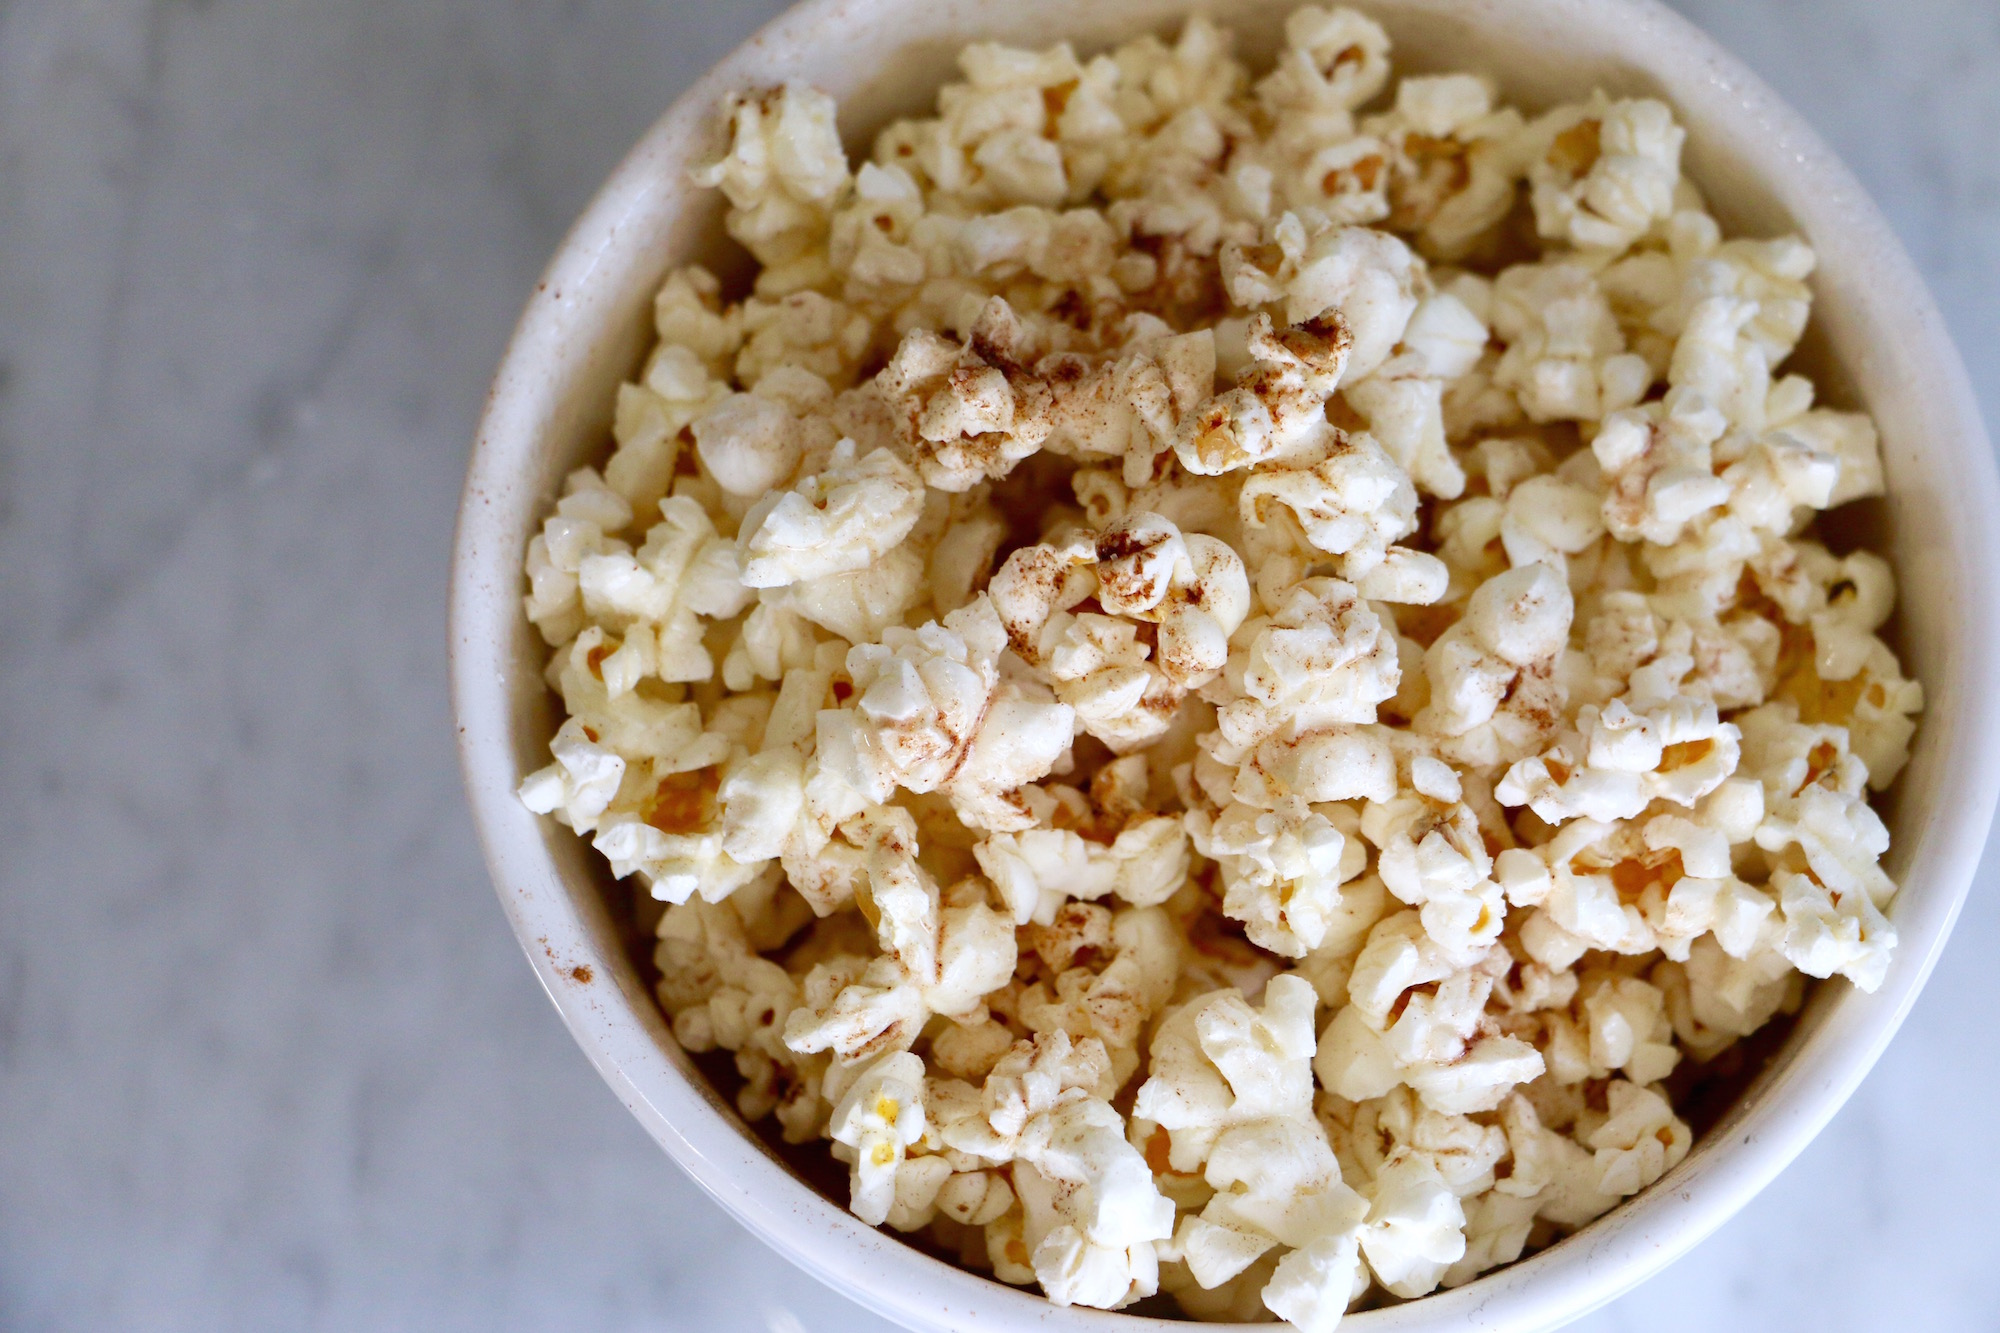 Cinnamon and Sugar Popcorn